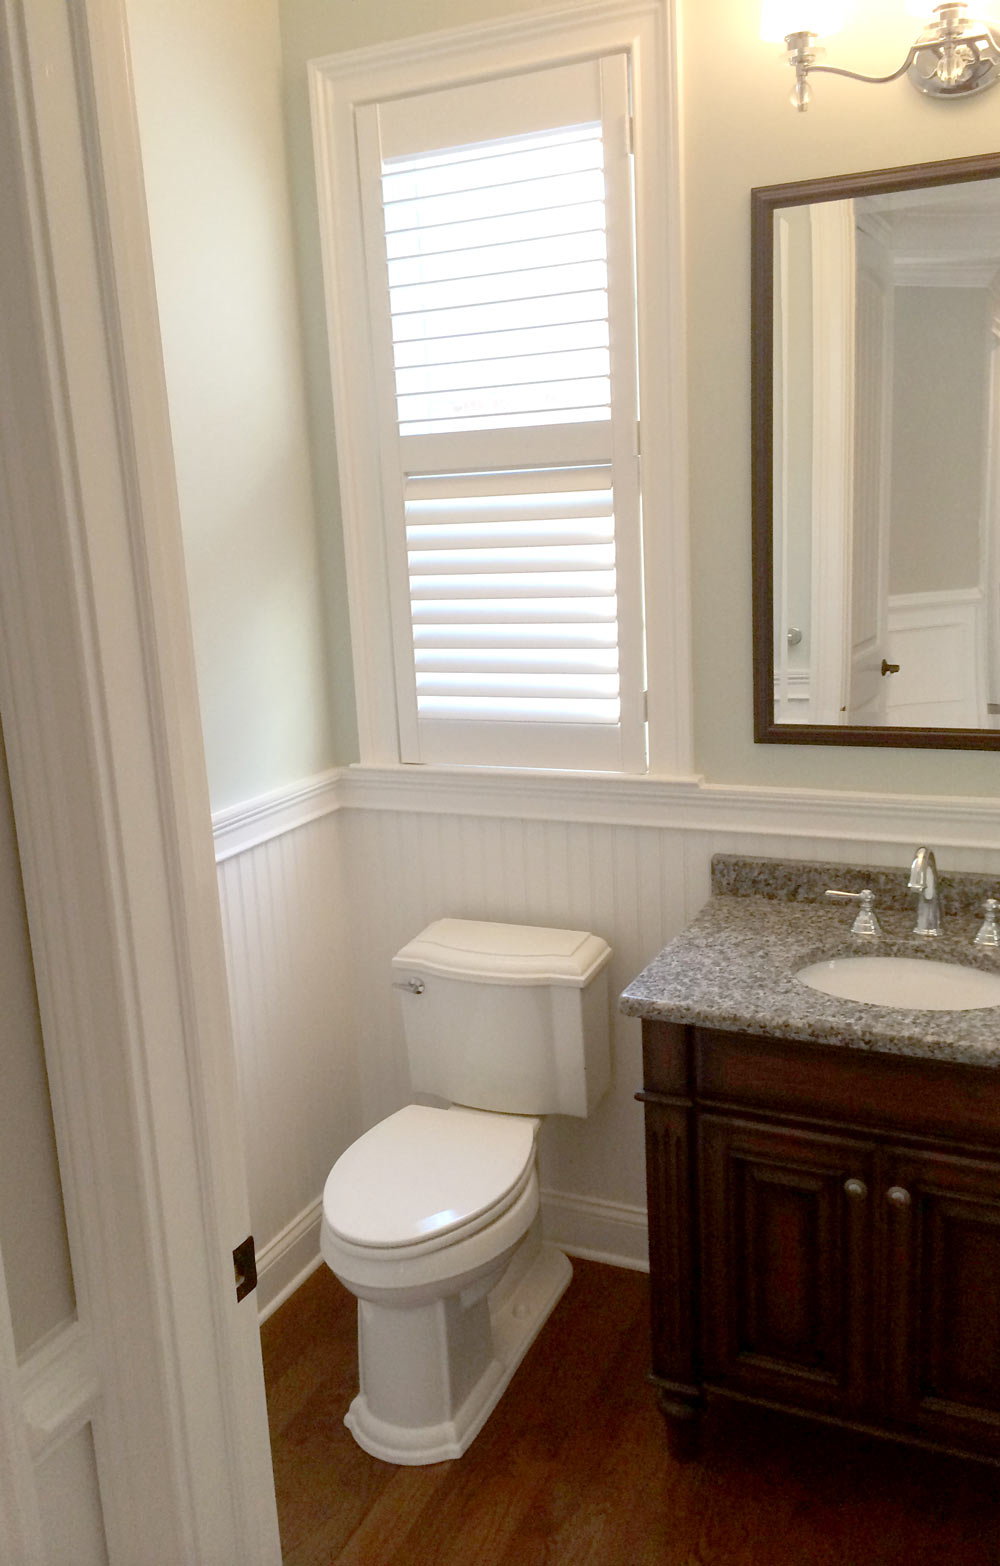 Bathroom remodeling contractor in medford nj aj wehner for 4 piece bathroom ideas